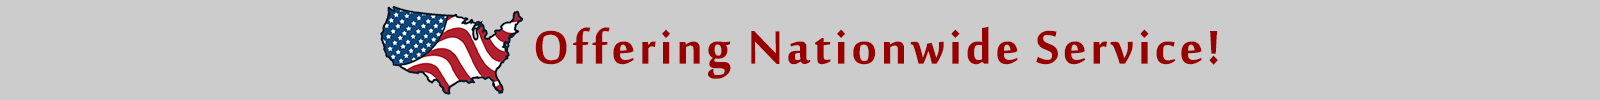 nationwide_shipping_banner